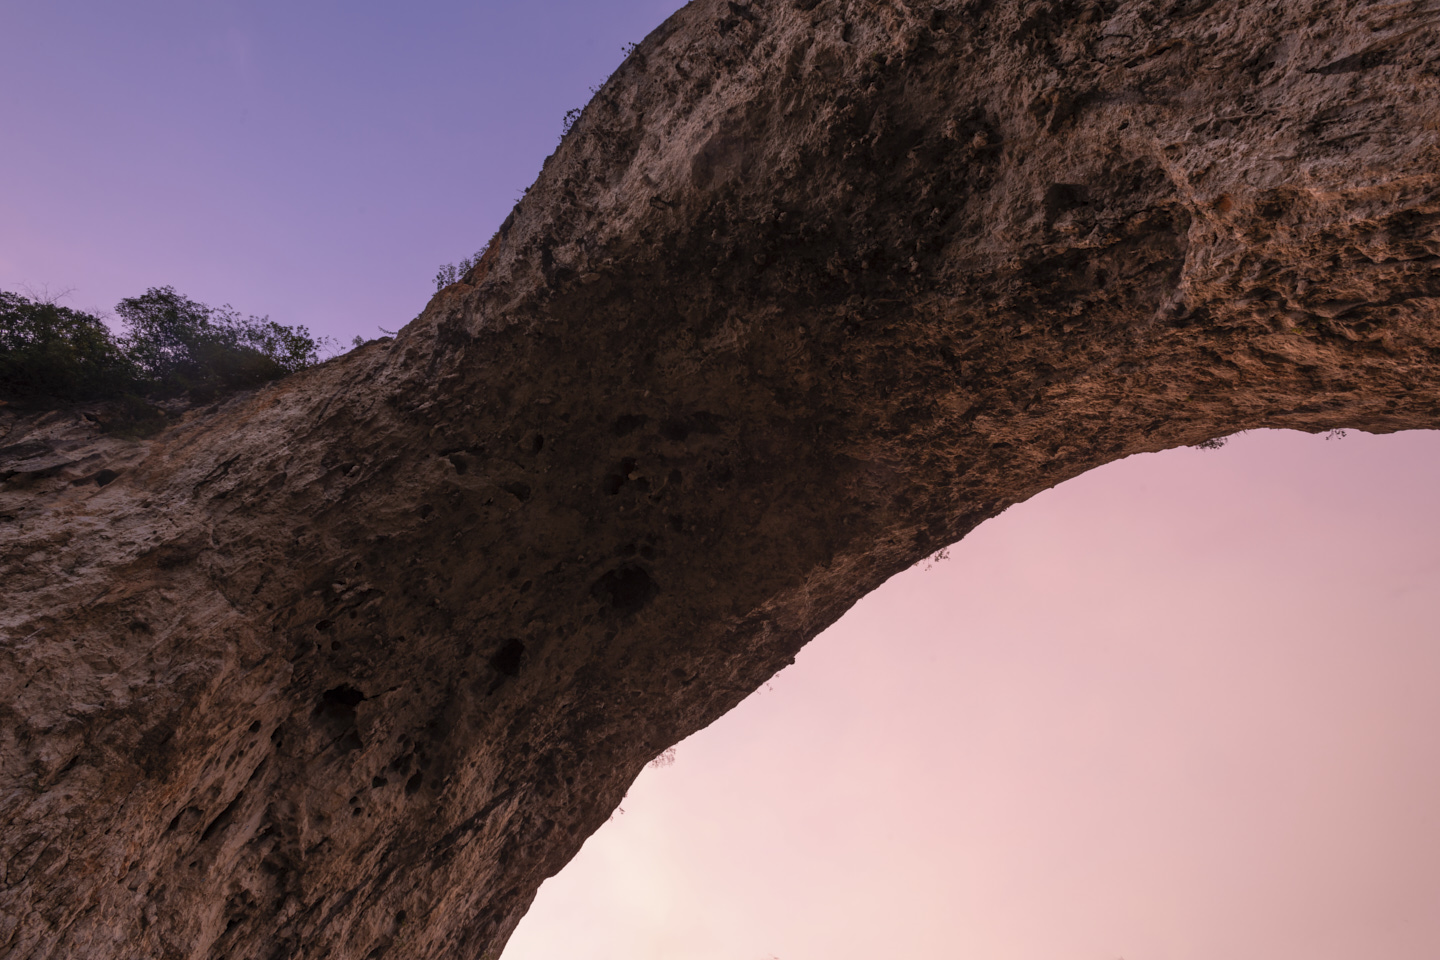 From underneath the arch, painted pink by the setting sun. Tufa hang and sky glows purple